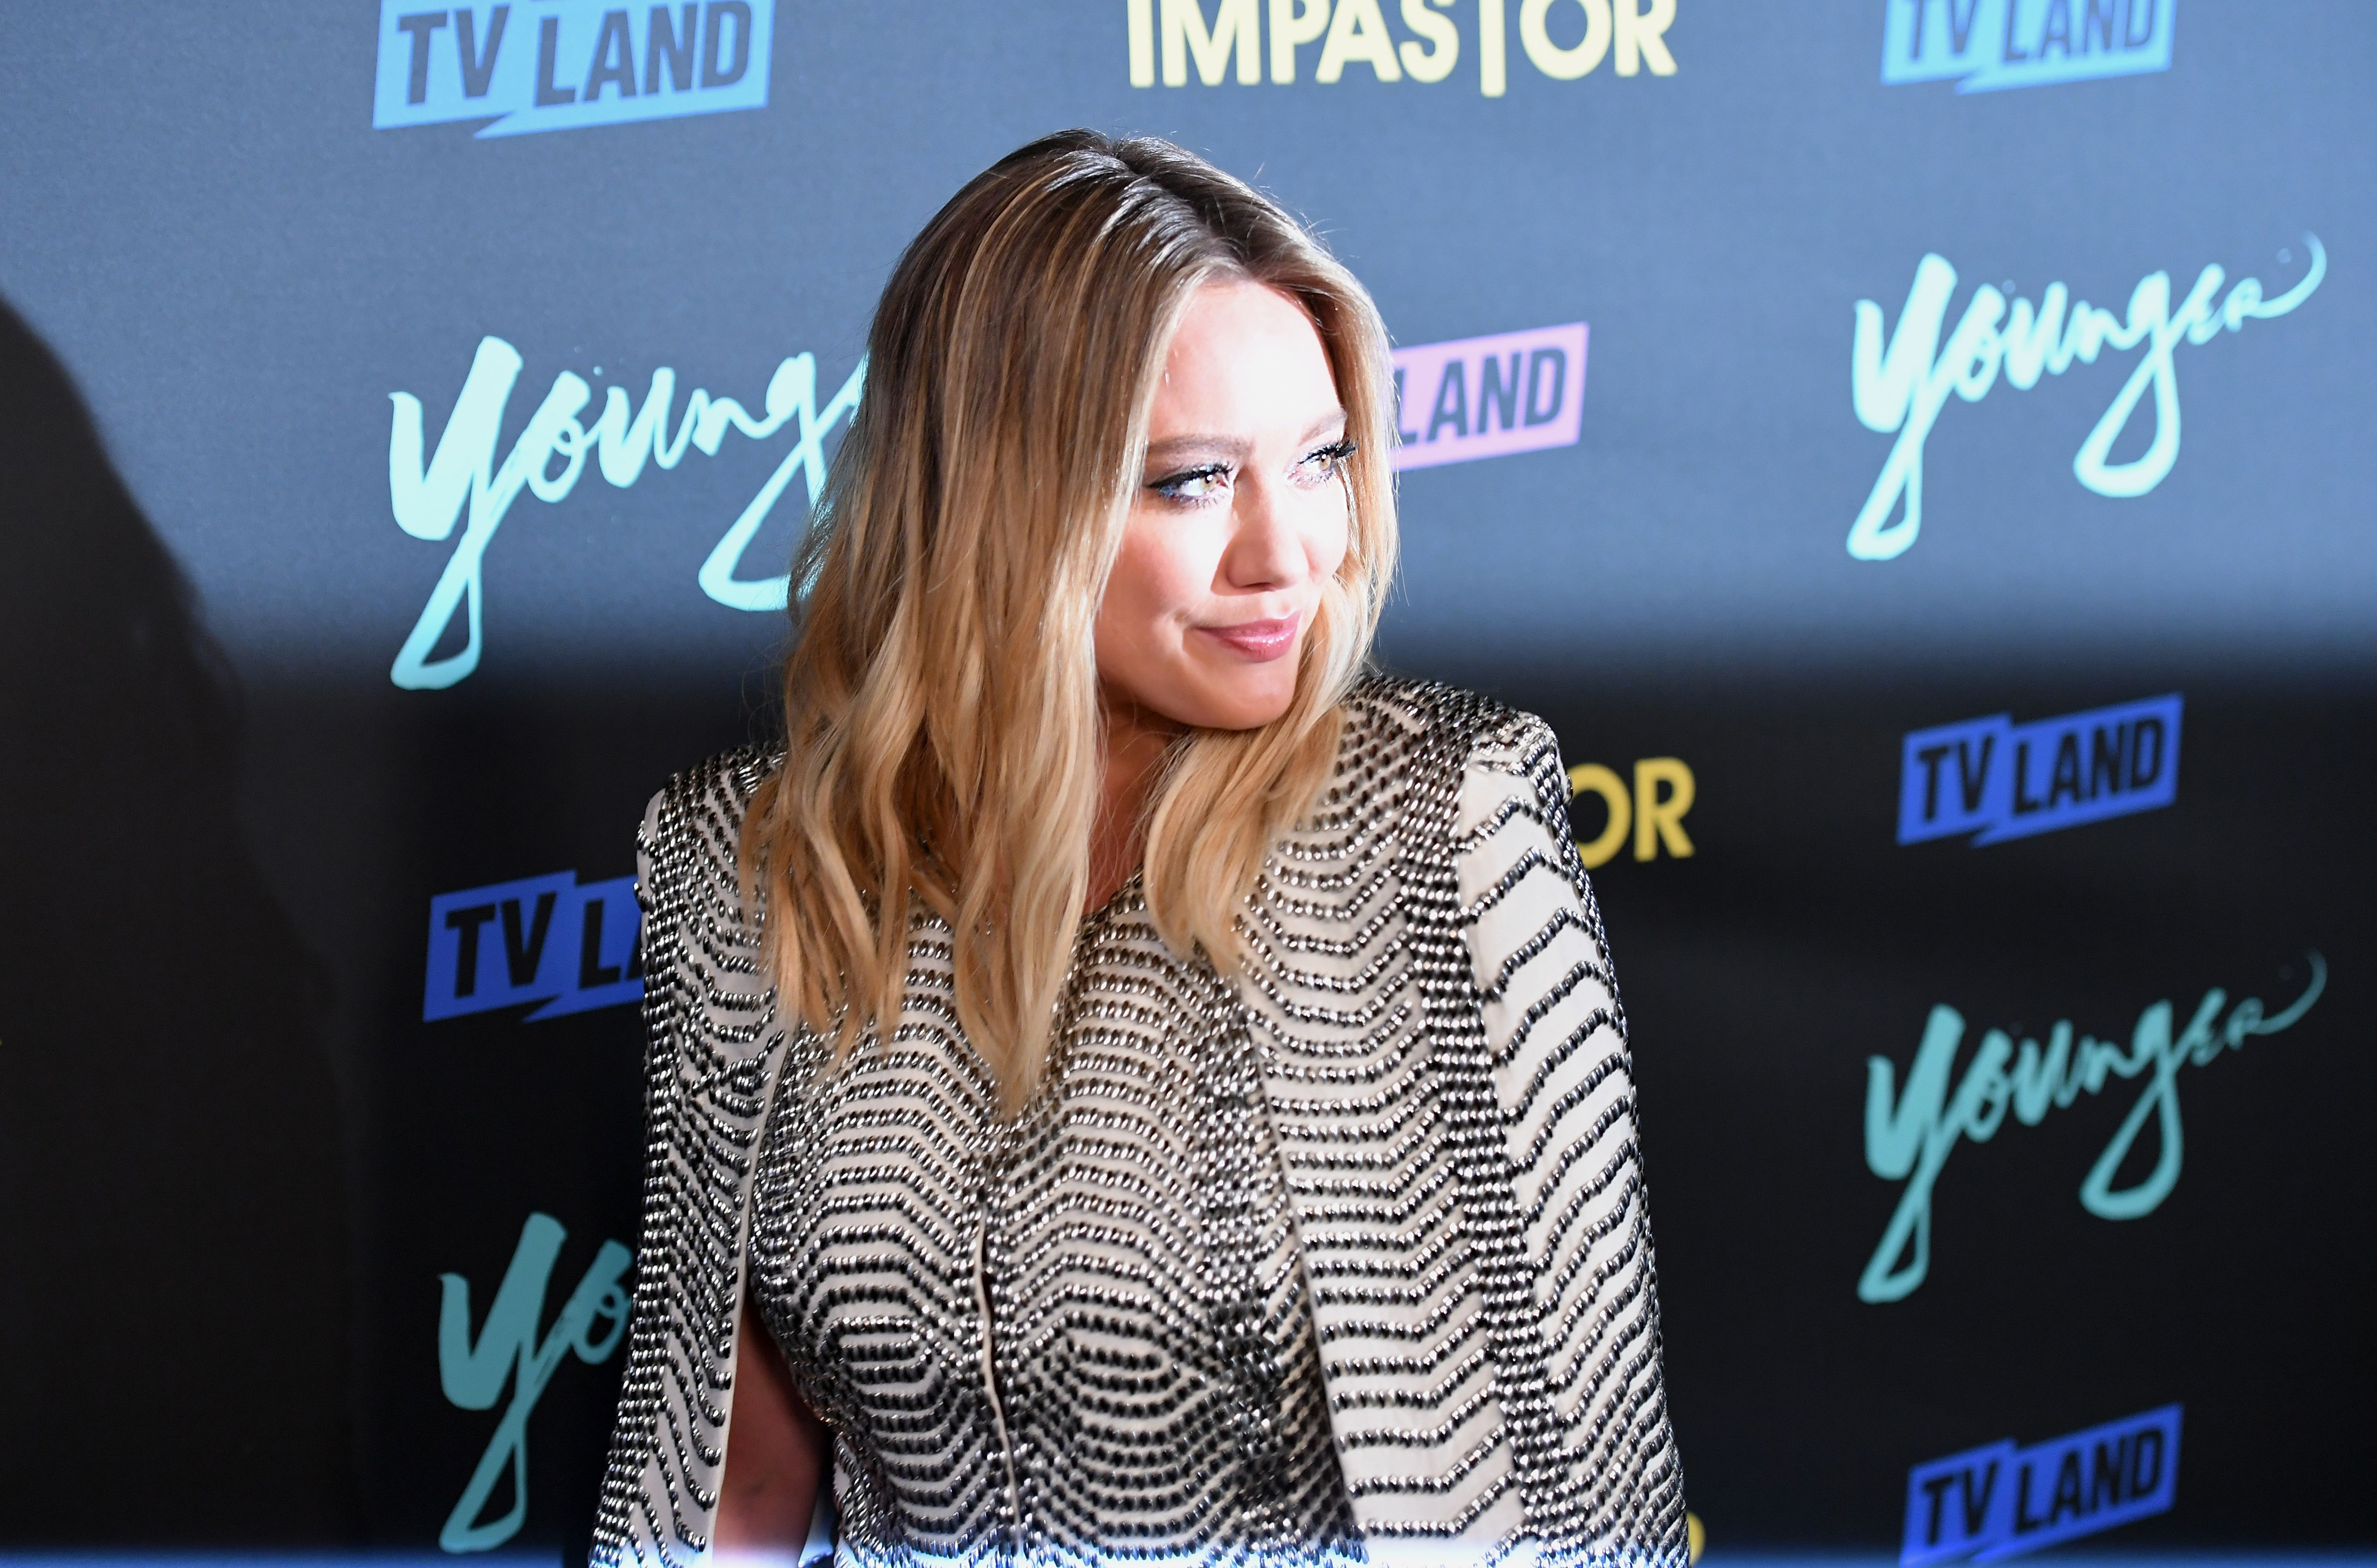 OMG: Hilary Duff is making out with her new boyfriend on Instagram and it's, umm, VERY hot